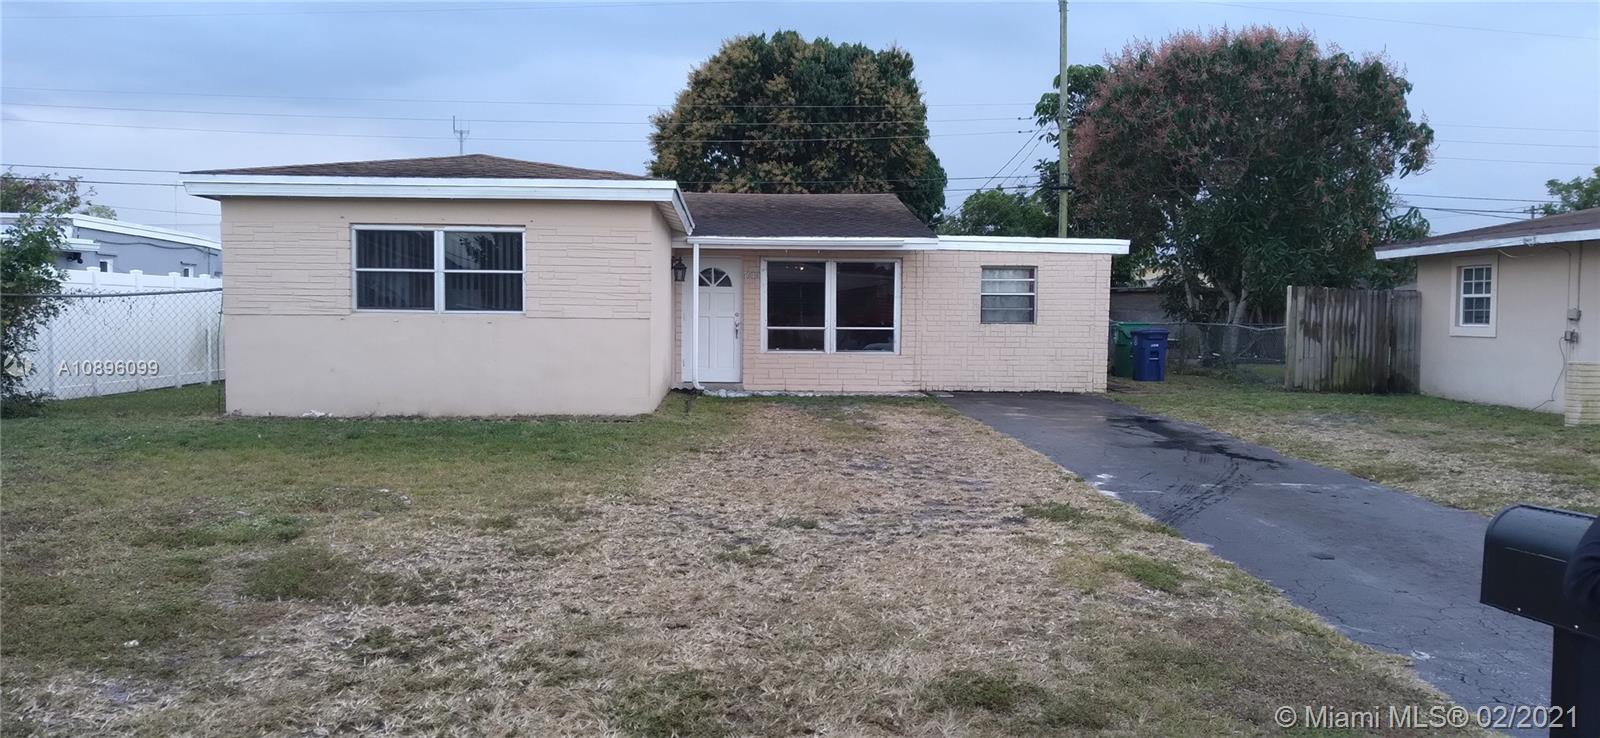 7010 SW 25th St  For Sale A10896099, FL